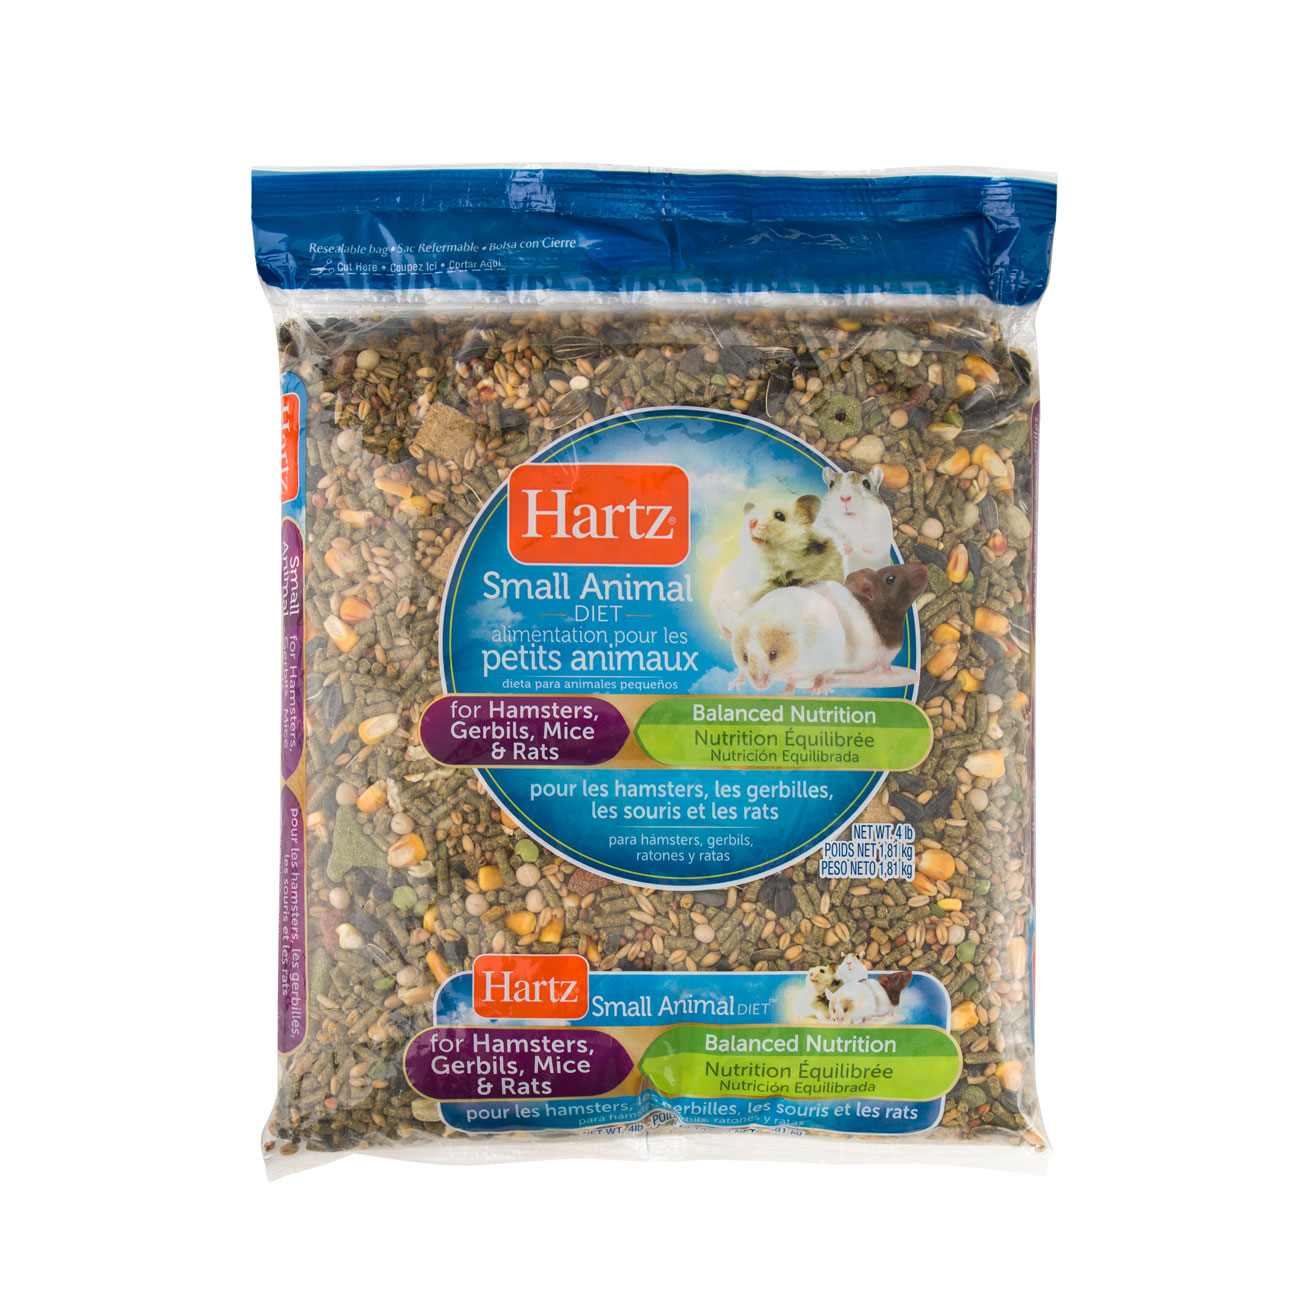 Alimentation Hamster hartz® small animal diets for hamsters, gerbils, mice, & rats - 4lb